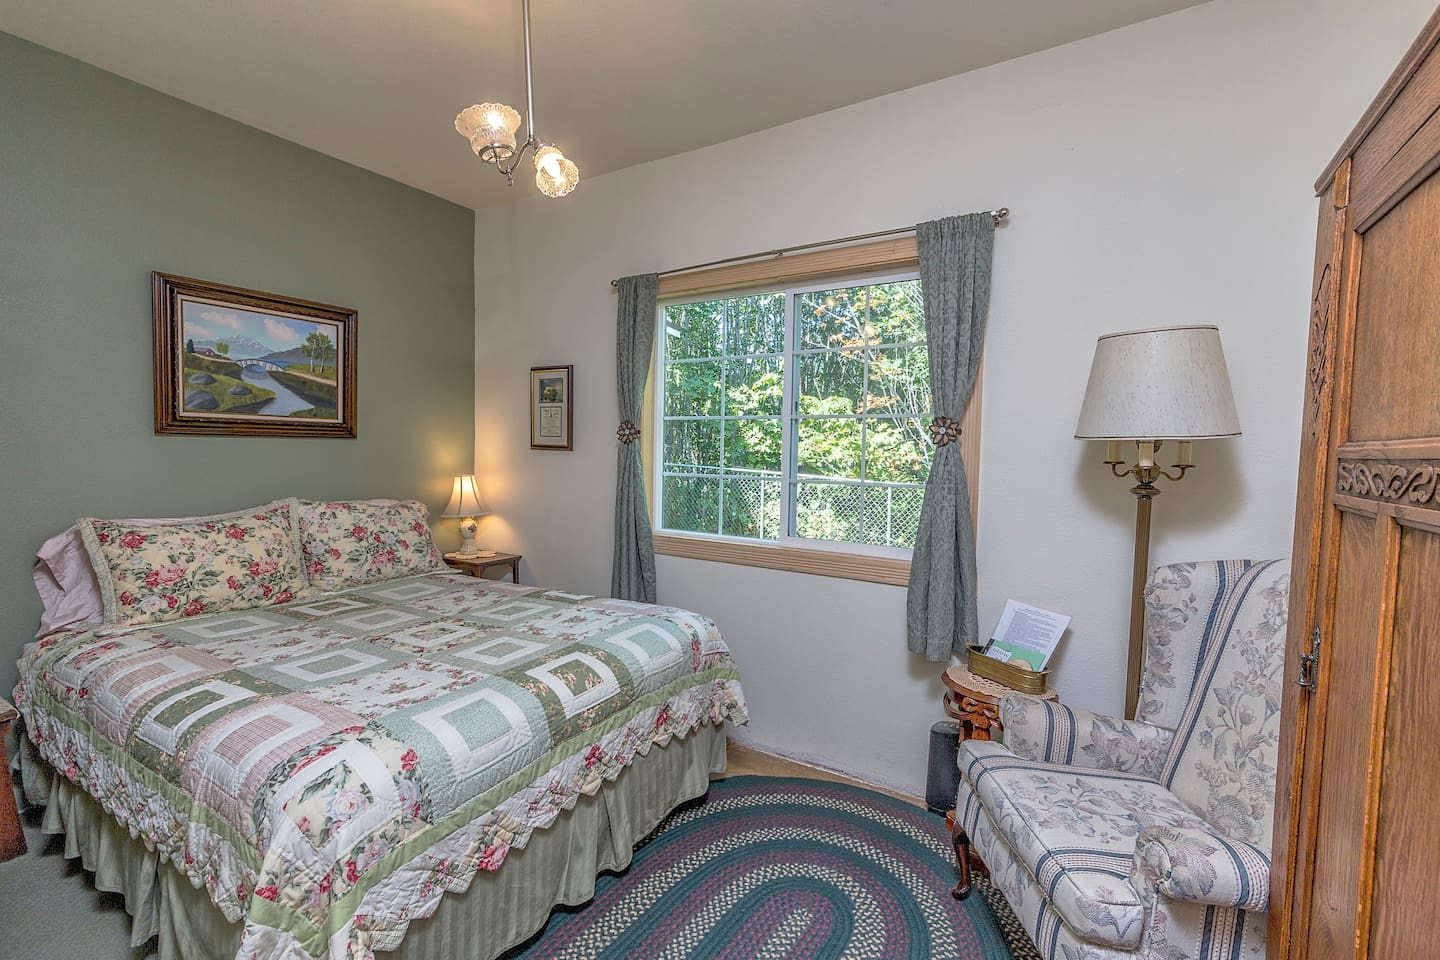 Enjoy a peaceful night's rest in the comfortable queen bed. This cozy room is located on the first floor and features the original late 1800s wood floor and a unique light fixture from the early 1900s.